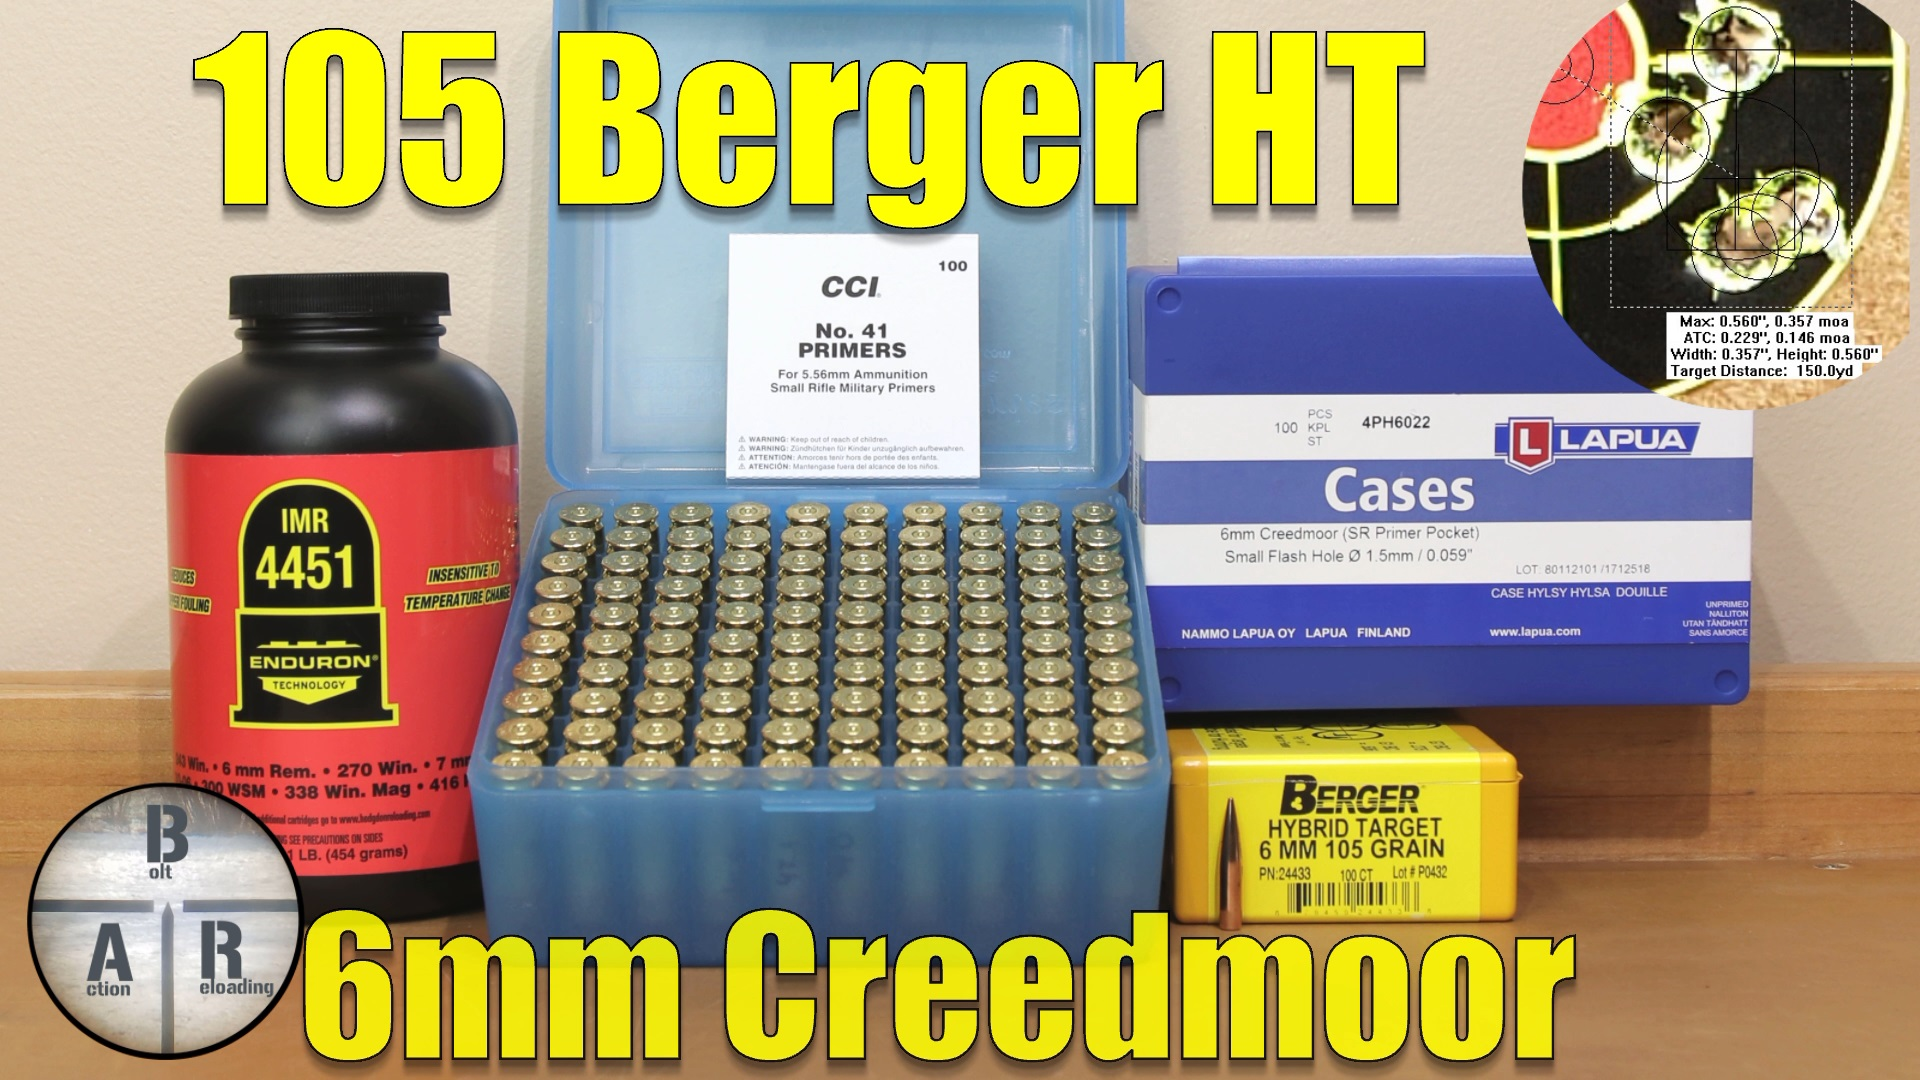 Bolt Action Reloading - The Reloaders Network